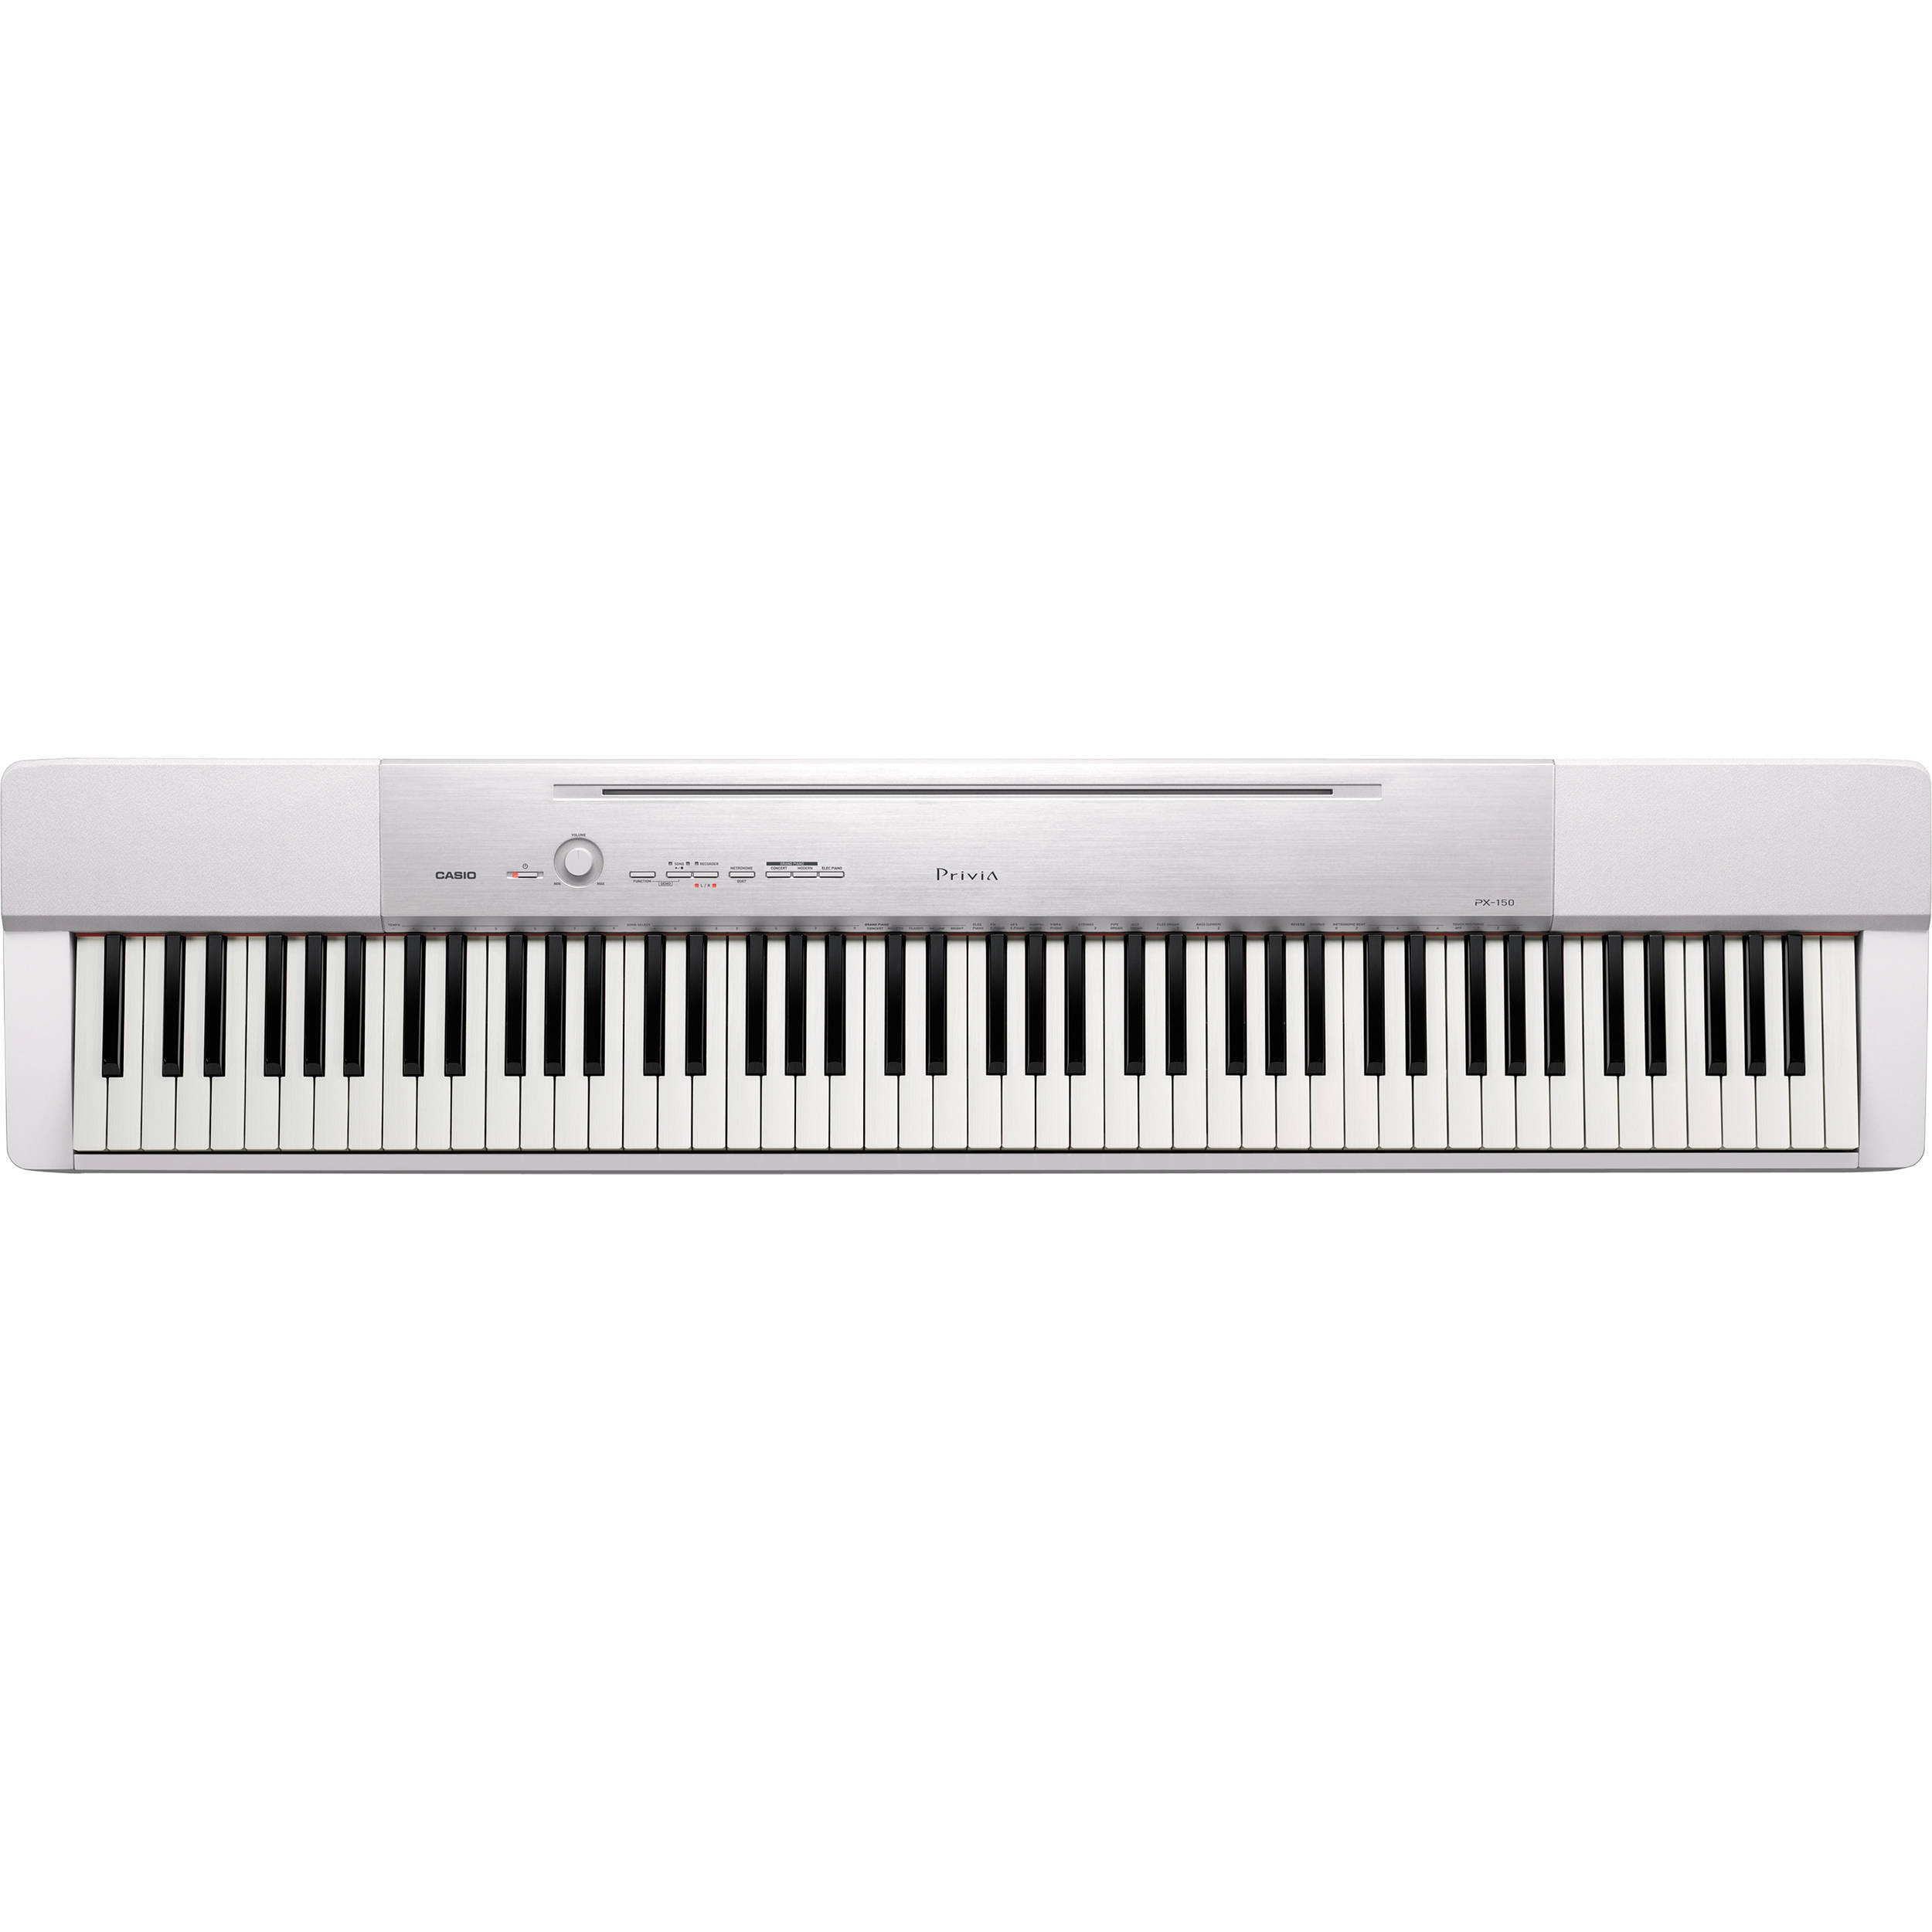 casio px 150 privia 88 key digital piano white px 150we b h. Black Bedroom Furniture Sets. Home Design Ideas